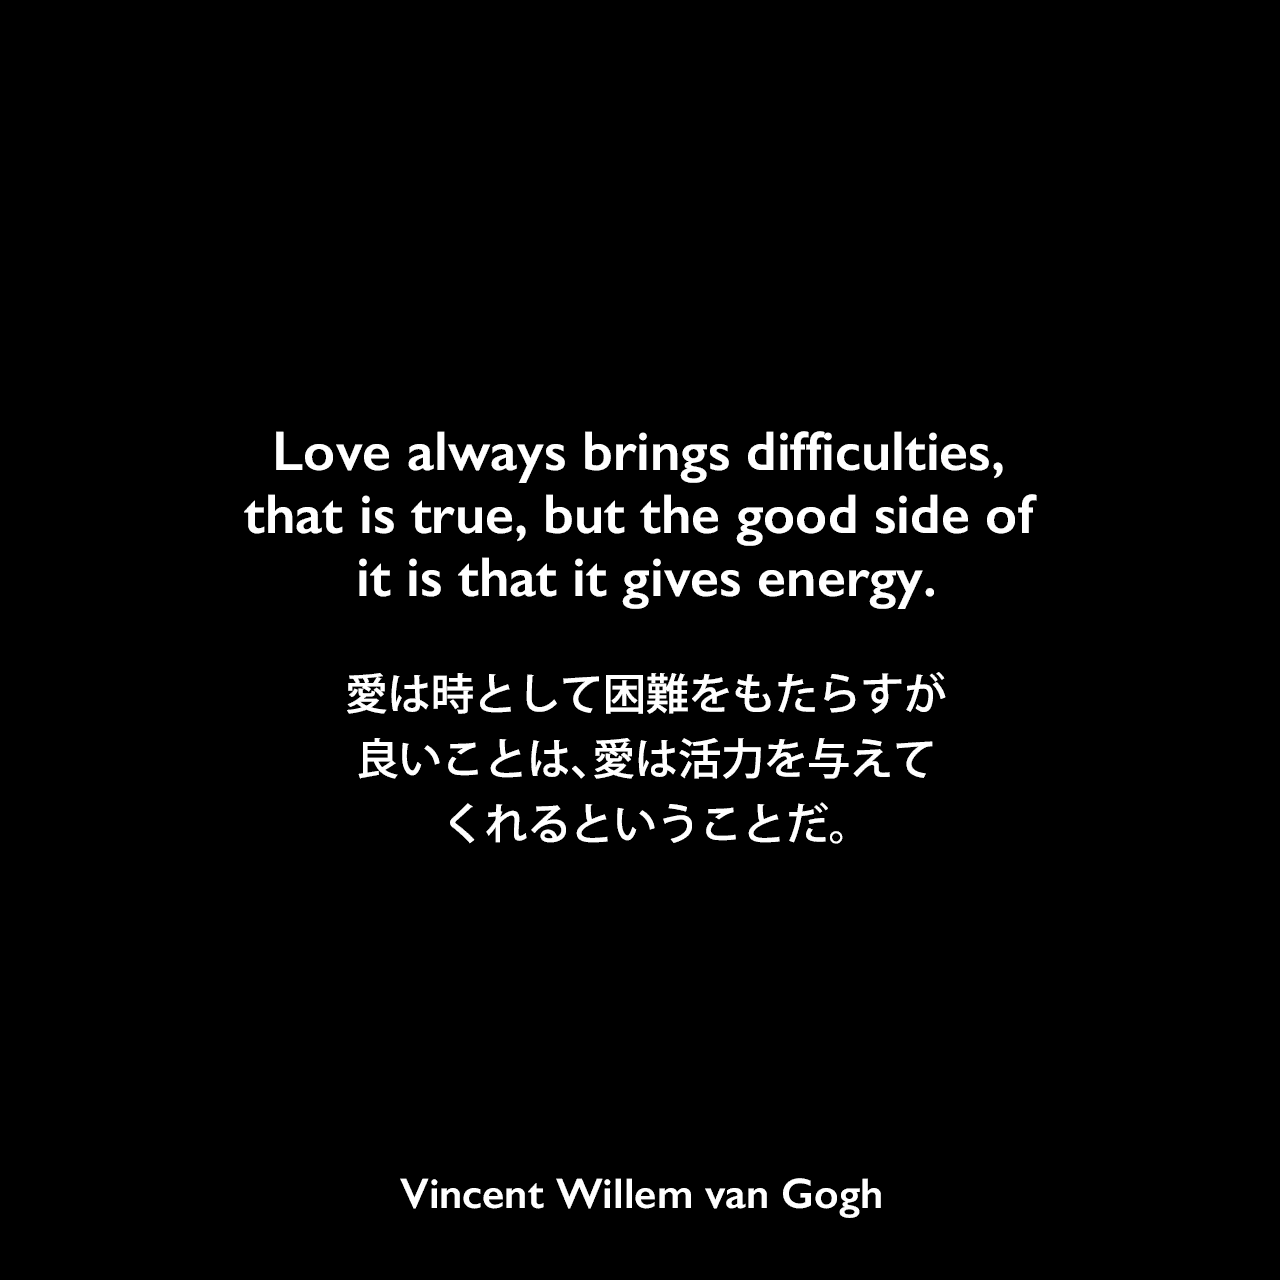 Love always brings difficulties, that is true, but the good side of it is that it gives energy.愛は時として困難をもたらすが、良いことは、愛は活力を与えてくれるということだ。